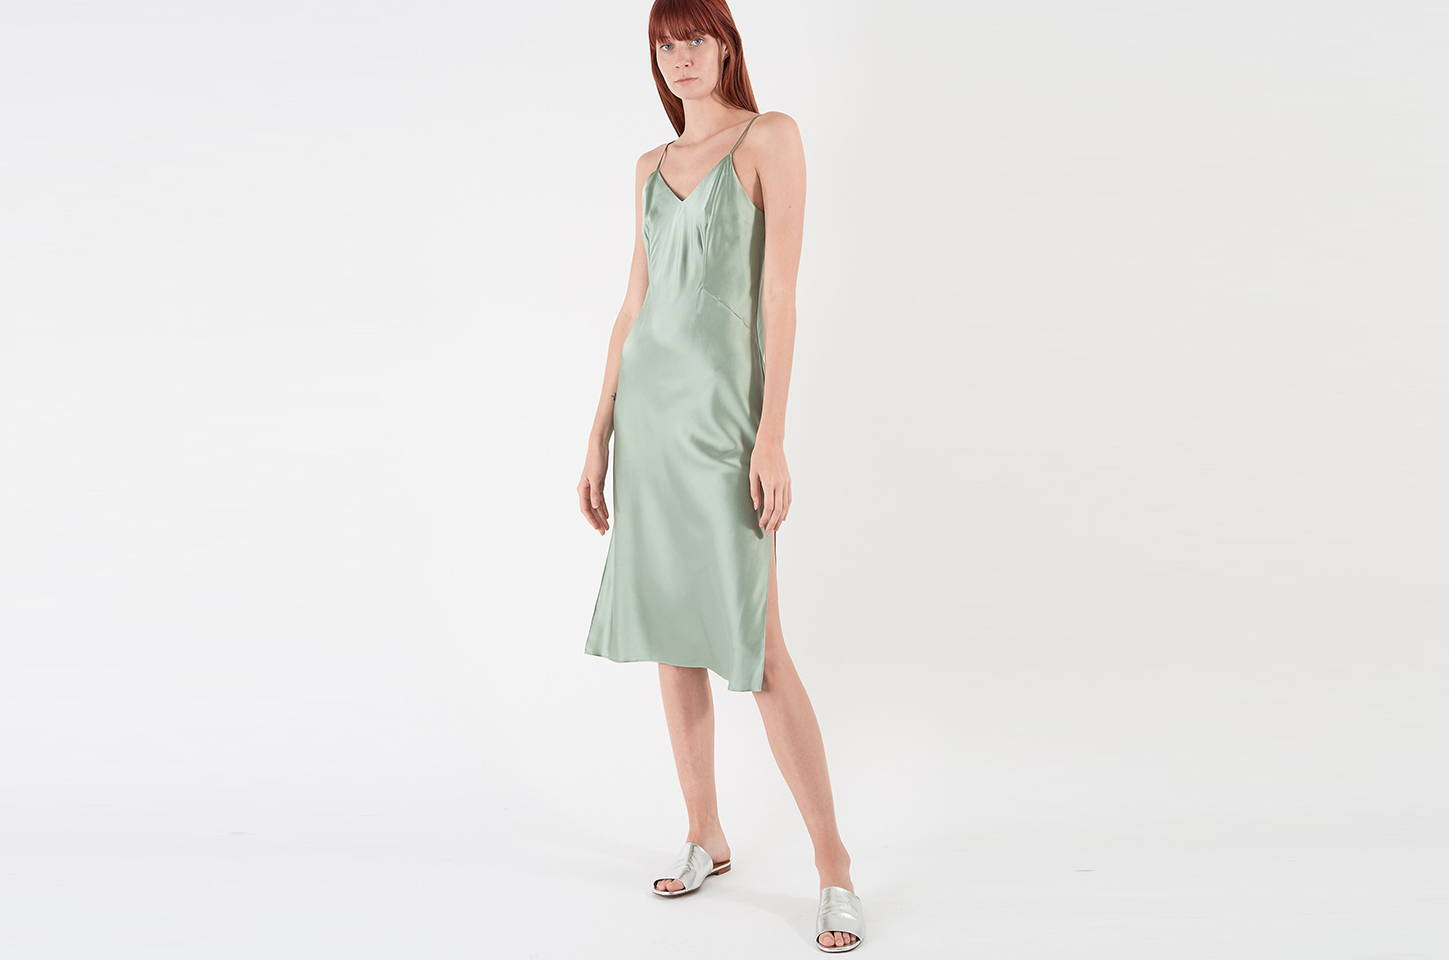 Our Exclusive The Great Eros exclusive slip dress